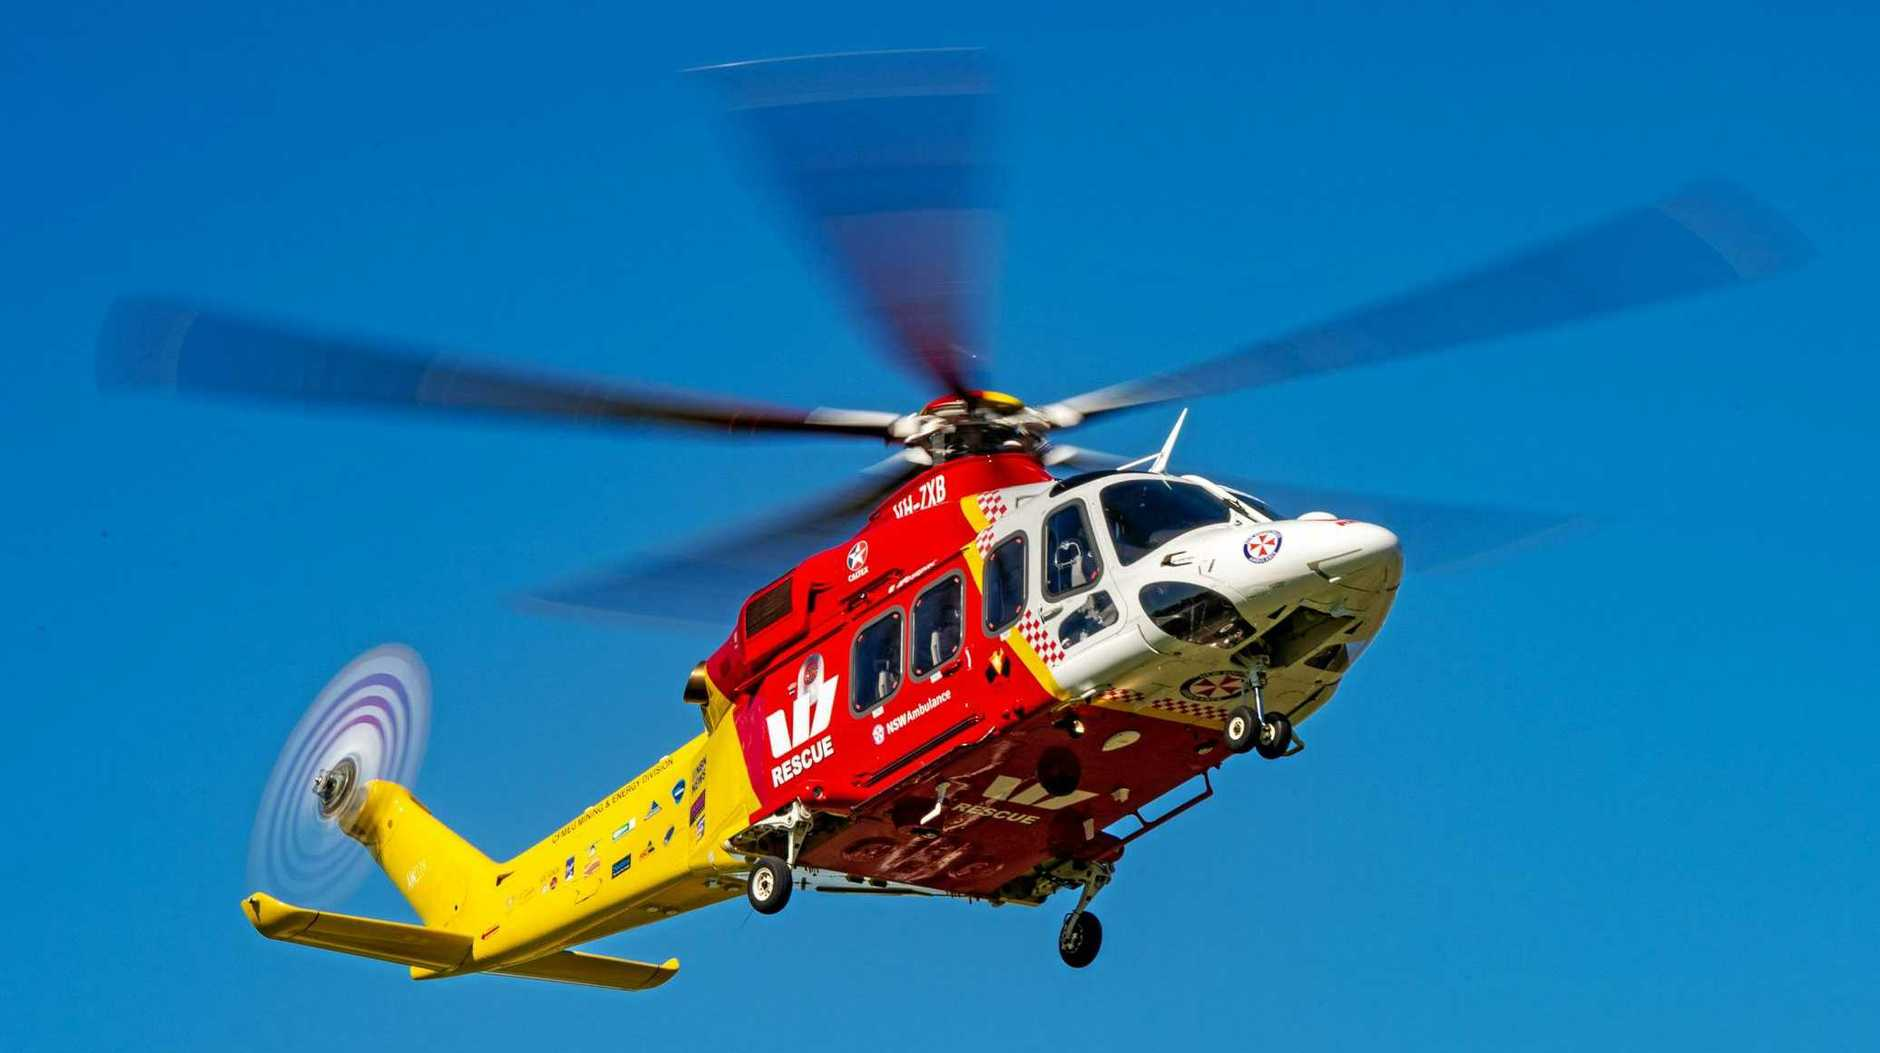 BREAKING NEWS: The Westpac Rescue Helicopter is on scene at Ocean Shores following a crash.